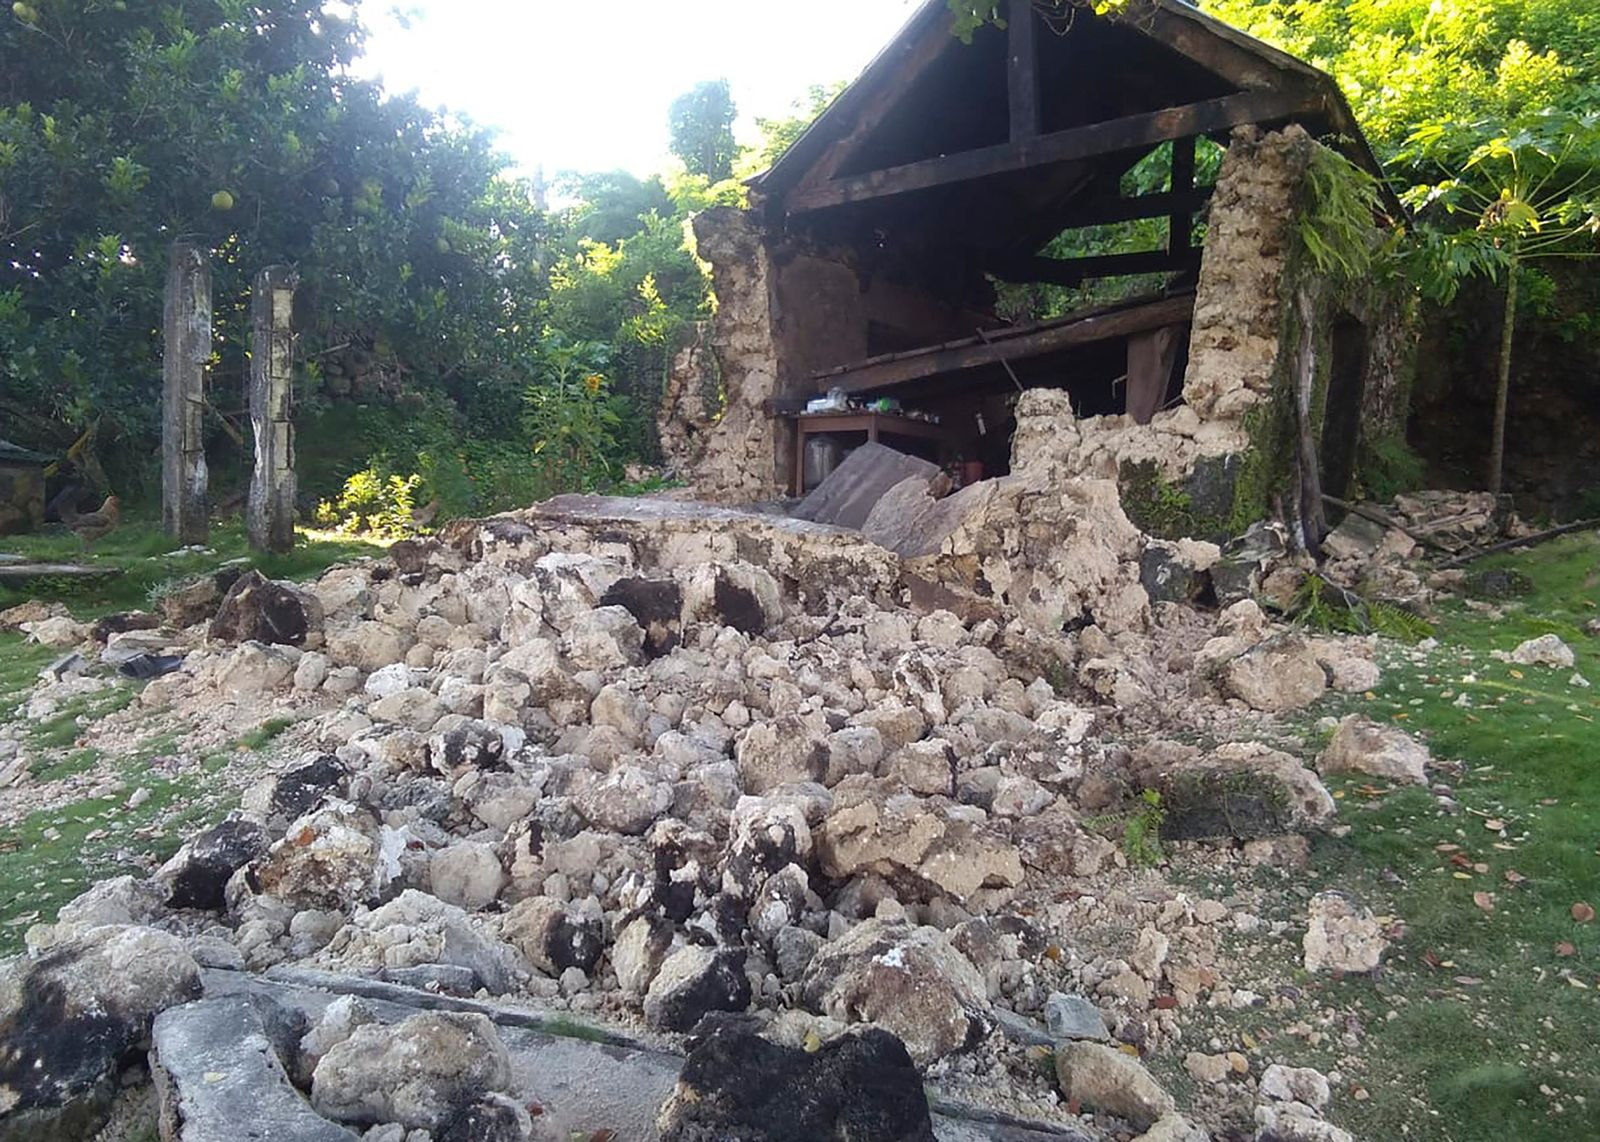 Damaged houses lie in Itbayat town, Batanes islands, northern Philippines on Saturday, July 27, 2019. Two strong earthquakes hours apart struck a group of sparsely populated islands in the Luzon Strait in the northern Philippines early Saturday. (AP Photo/Agnes Salengua Nico)